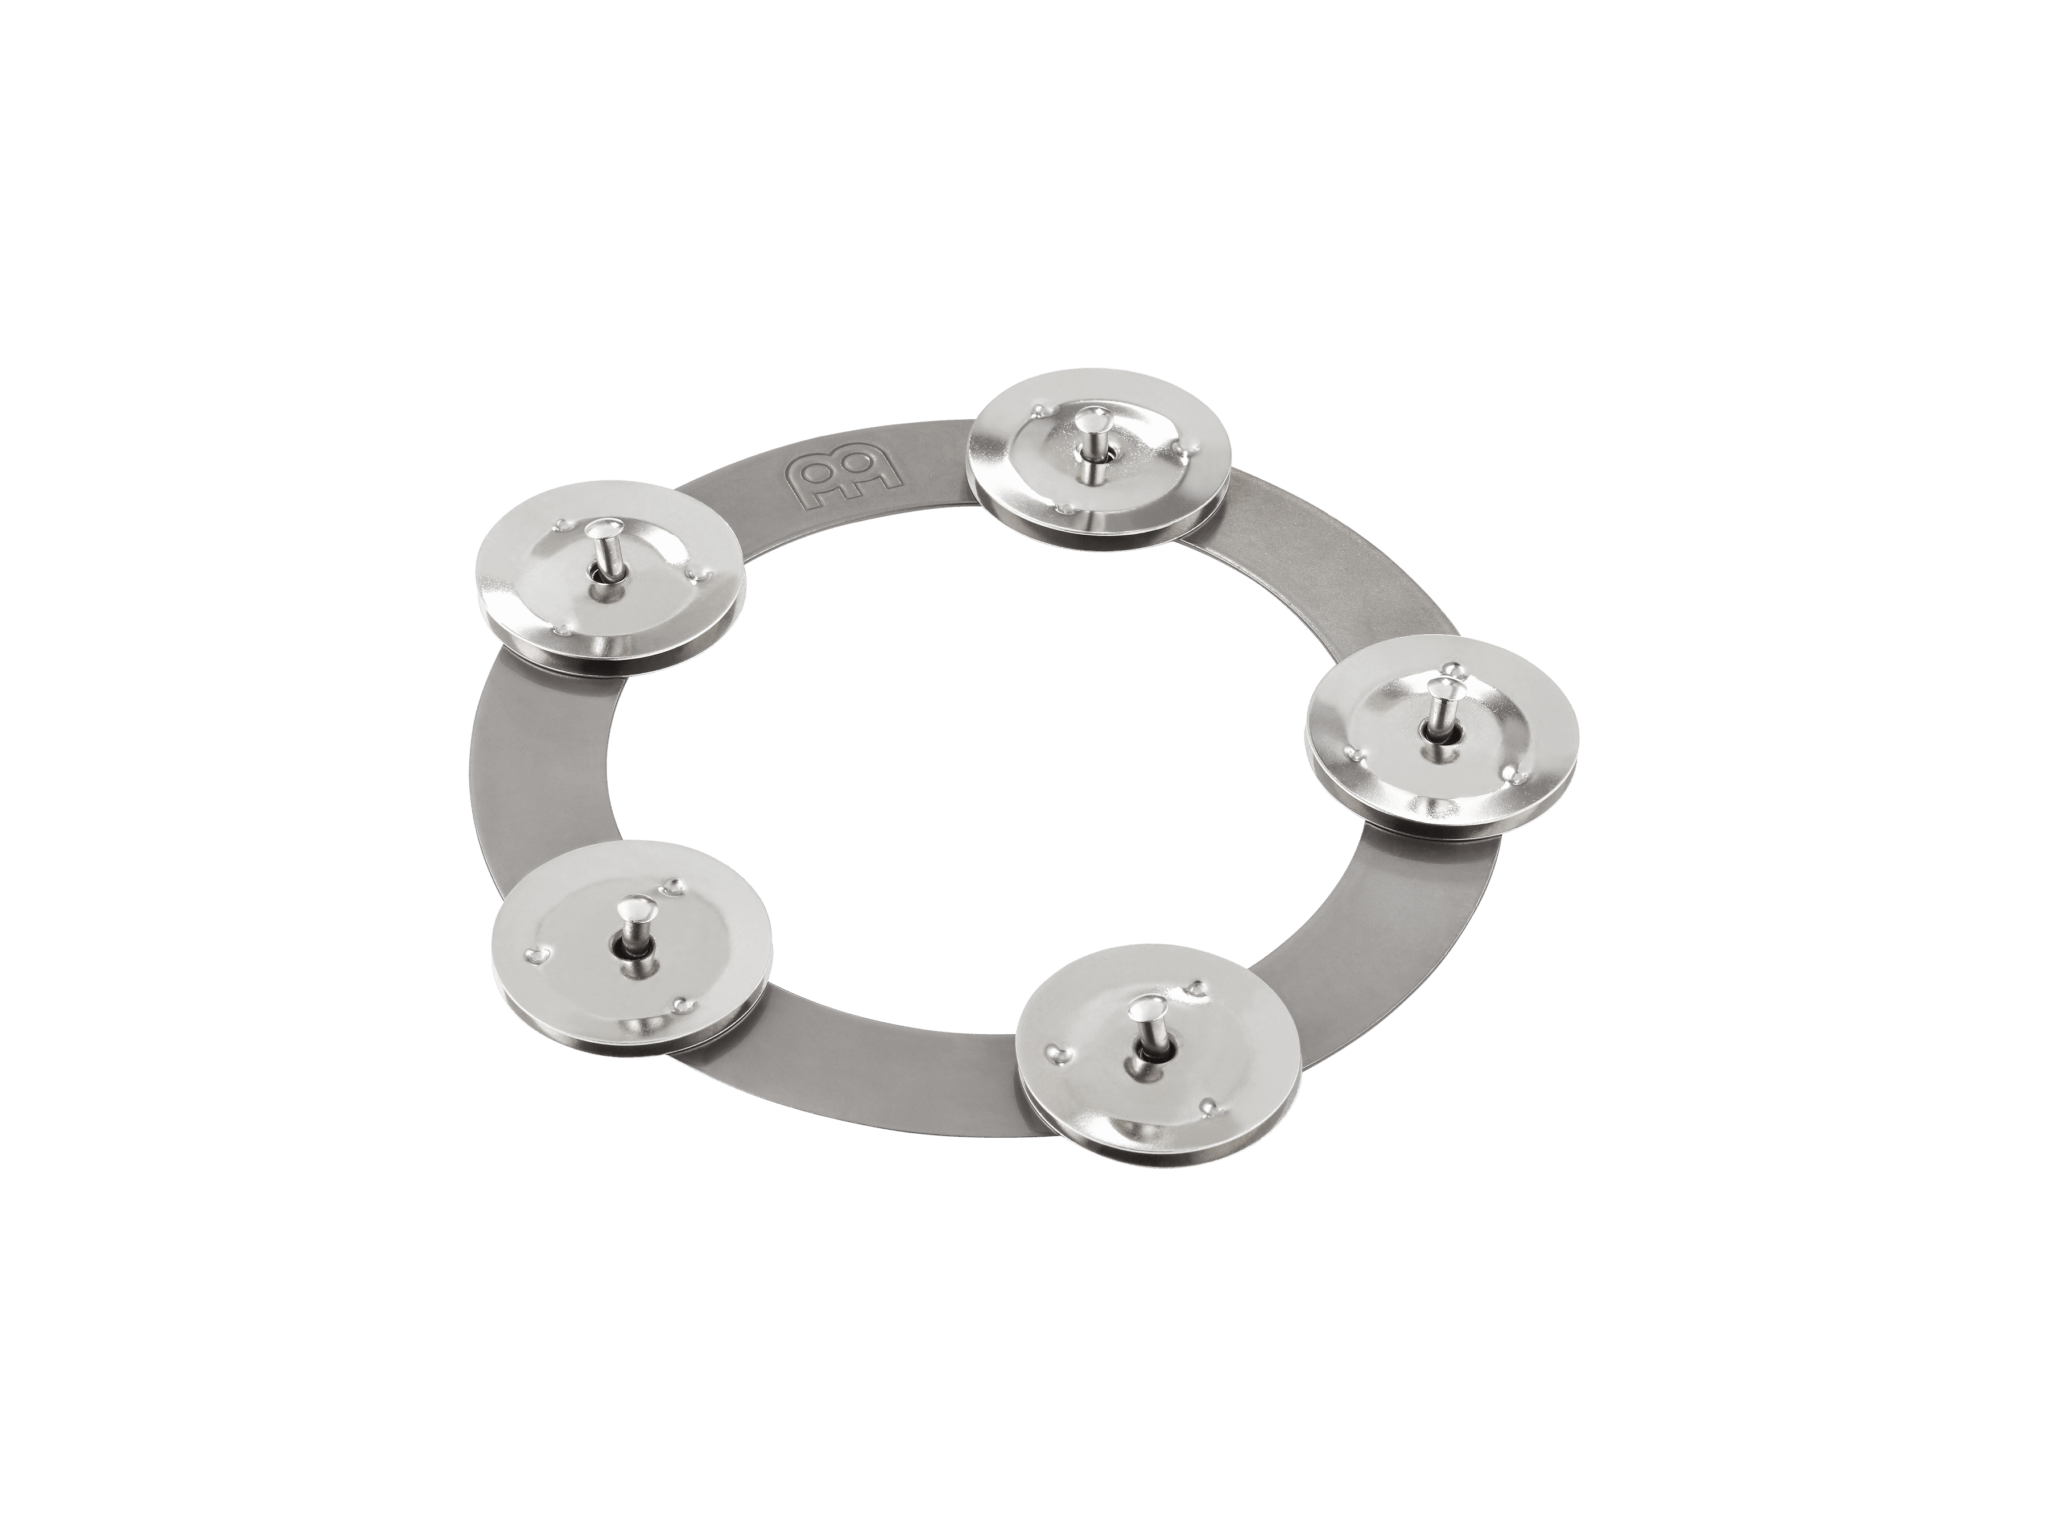 Meinl Ching Ring at dD Drums